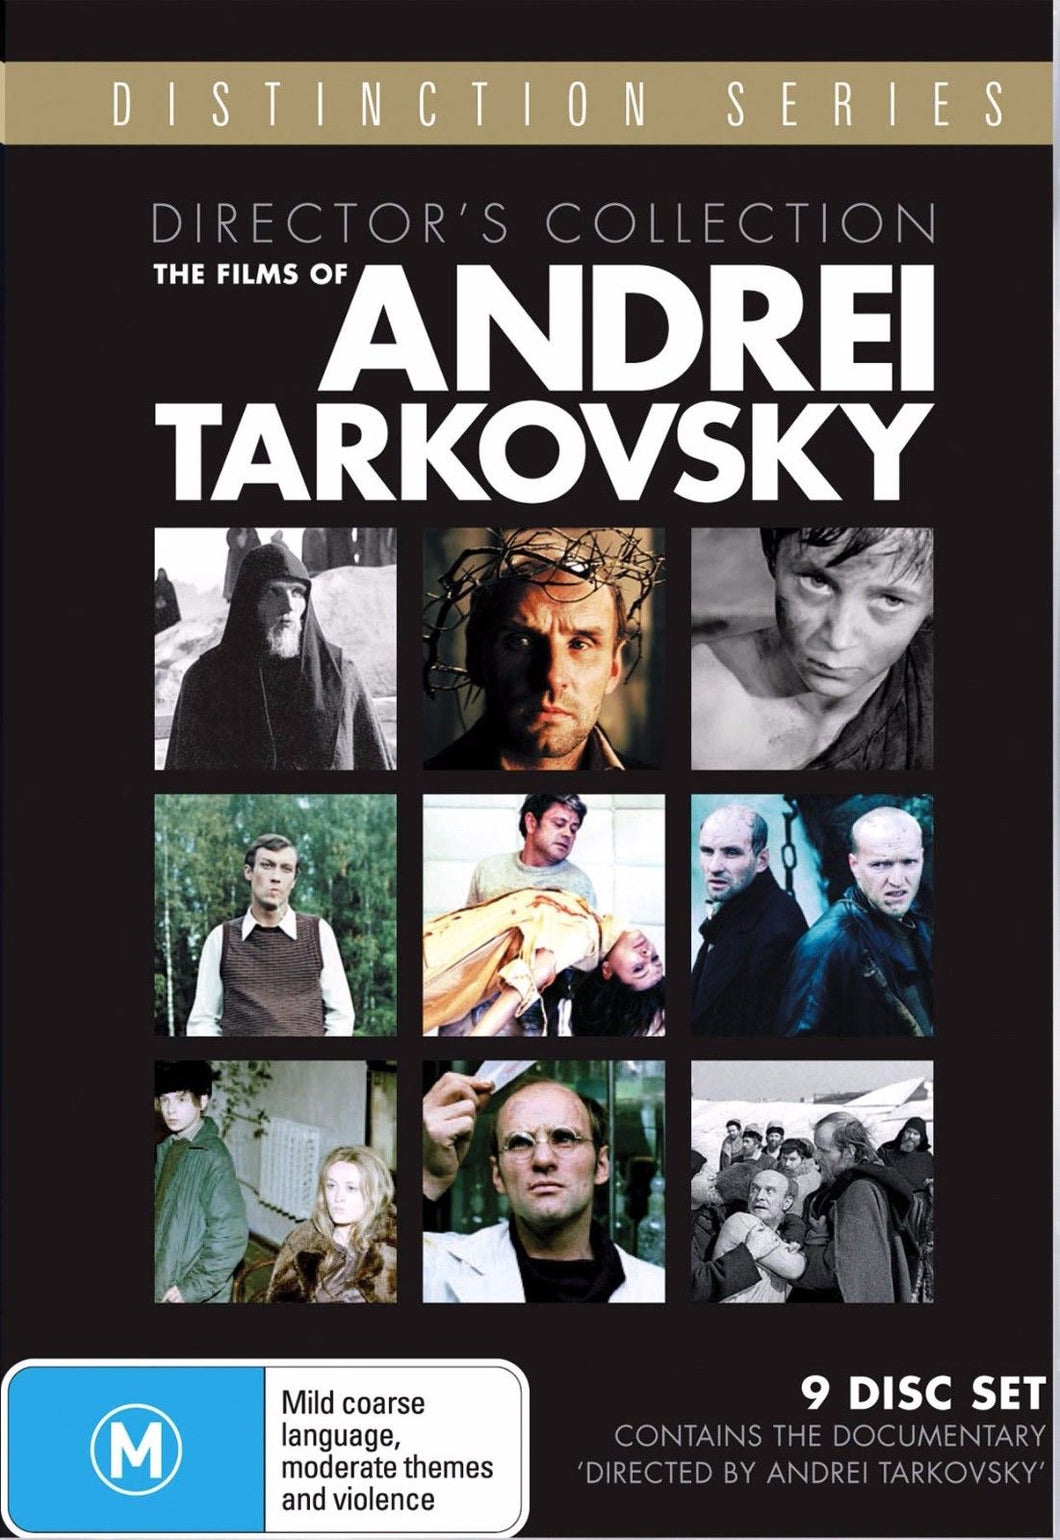 The Films of Andrei Tarkovsky (Director's Collection) (Distinction Series) DVD